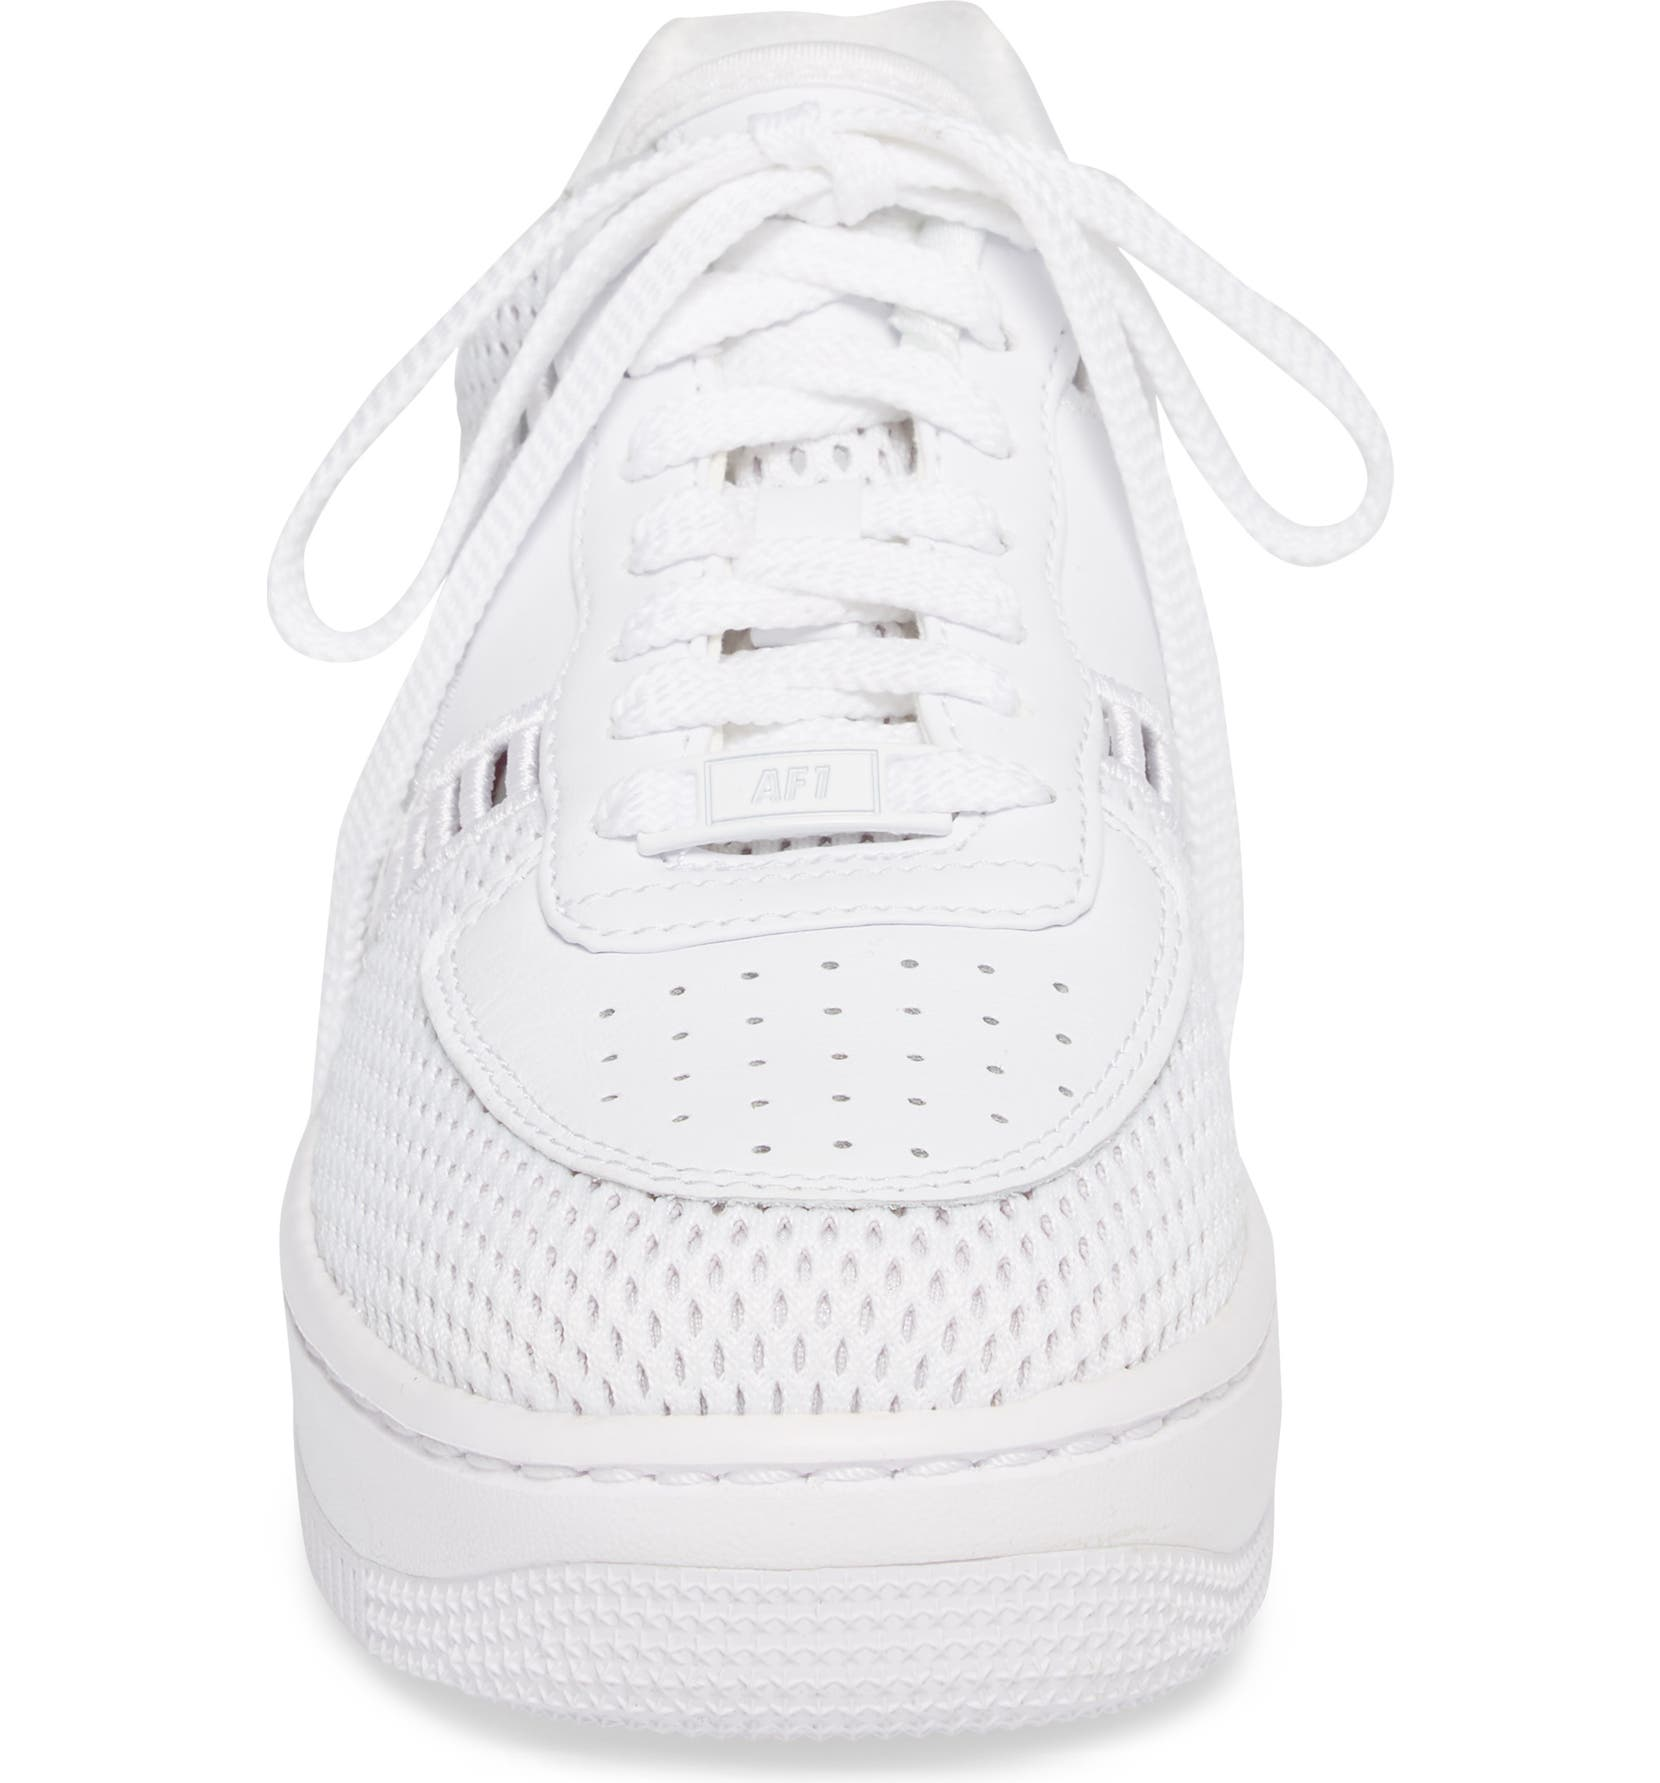 Air Force 1 Upstep SI Mesh Sneaker